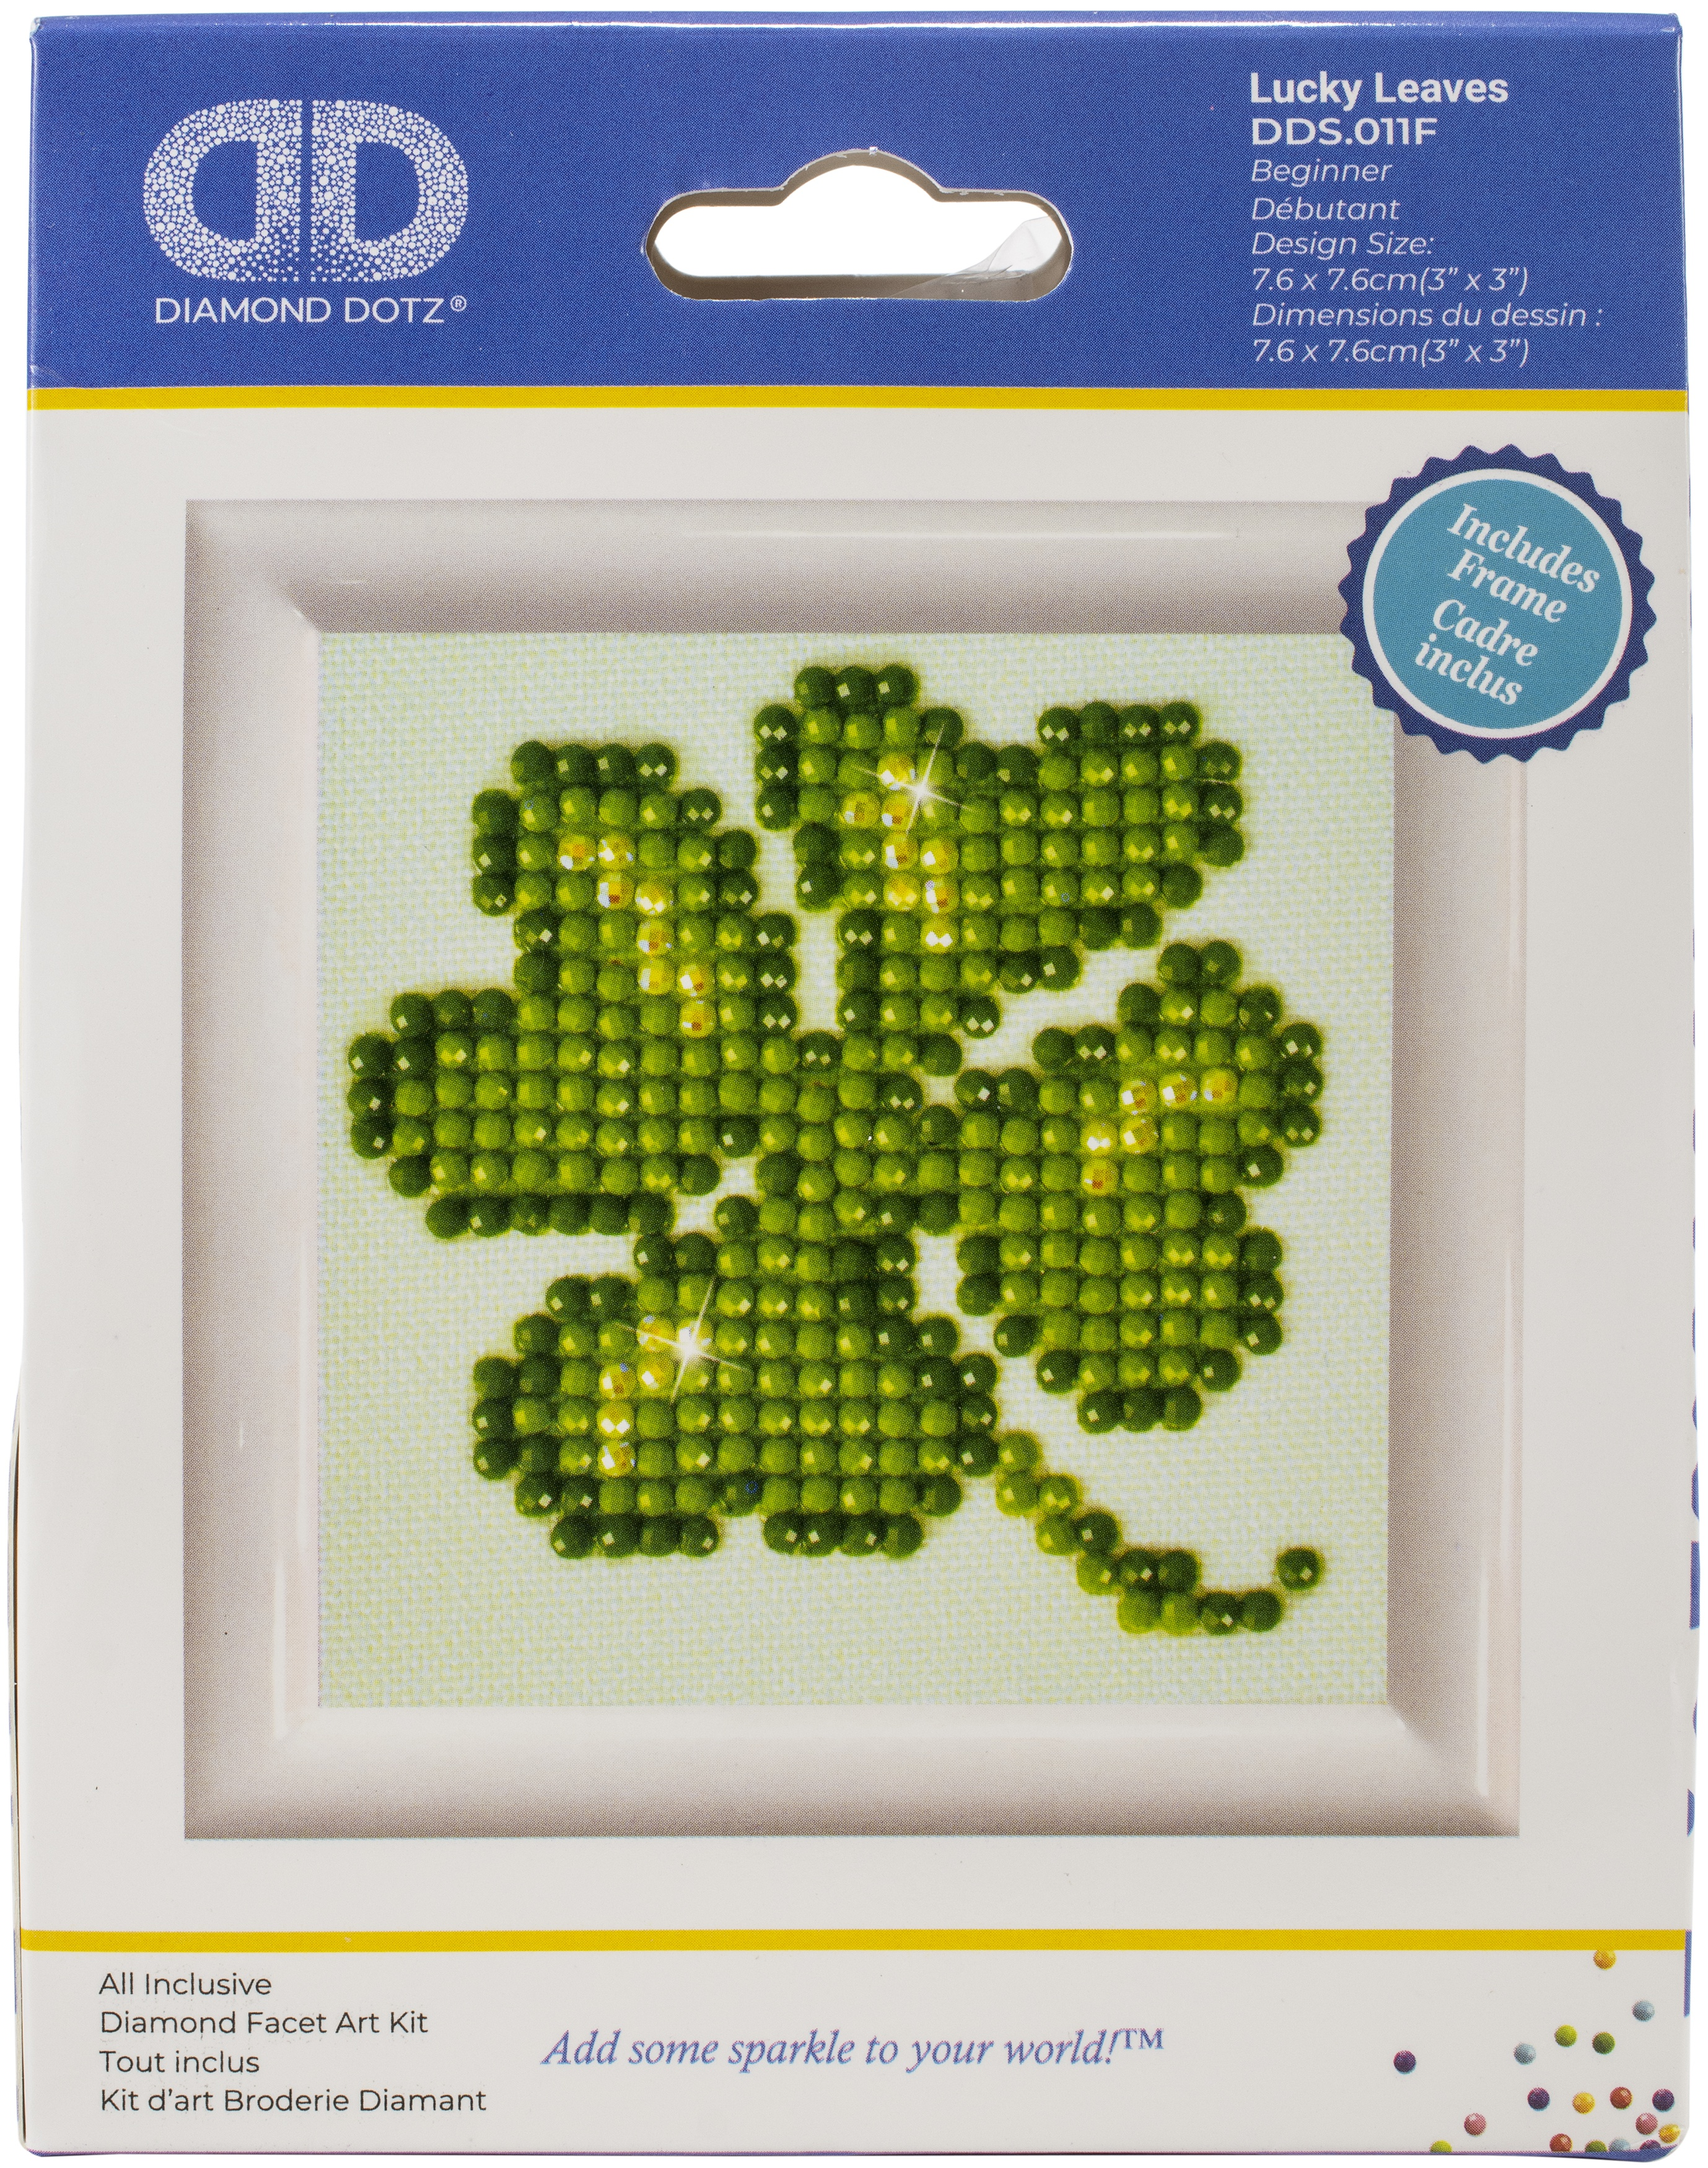 Diamond Dotz Diamond Embroidery Facet Art Kit W/ Frame-Lucky Leaves W/ White Frame